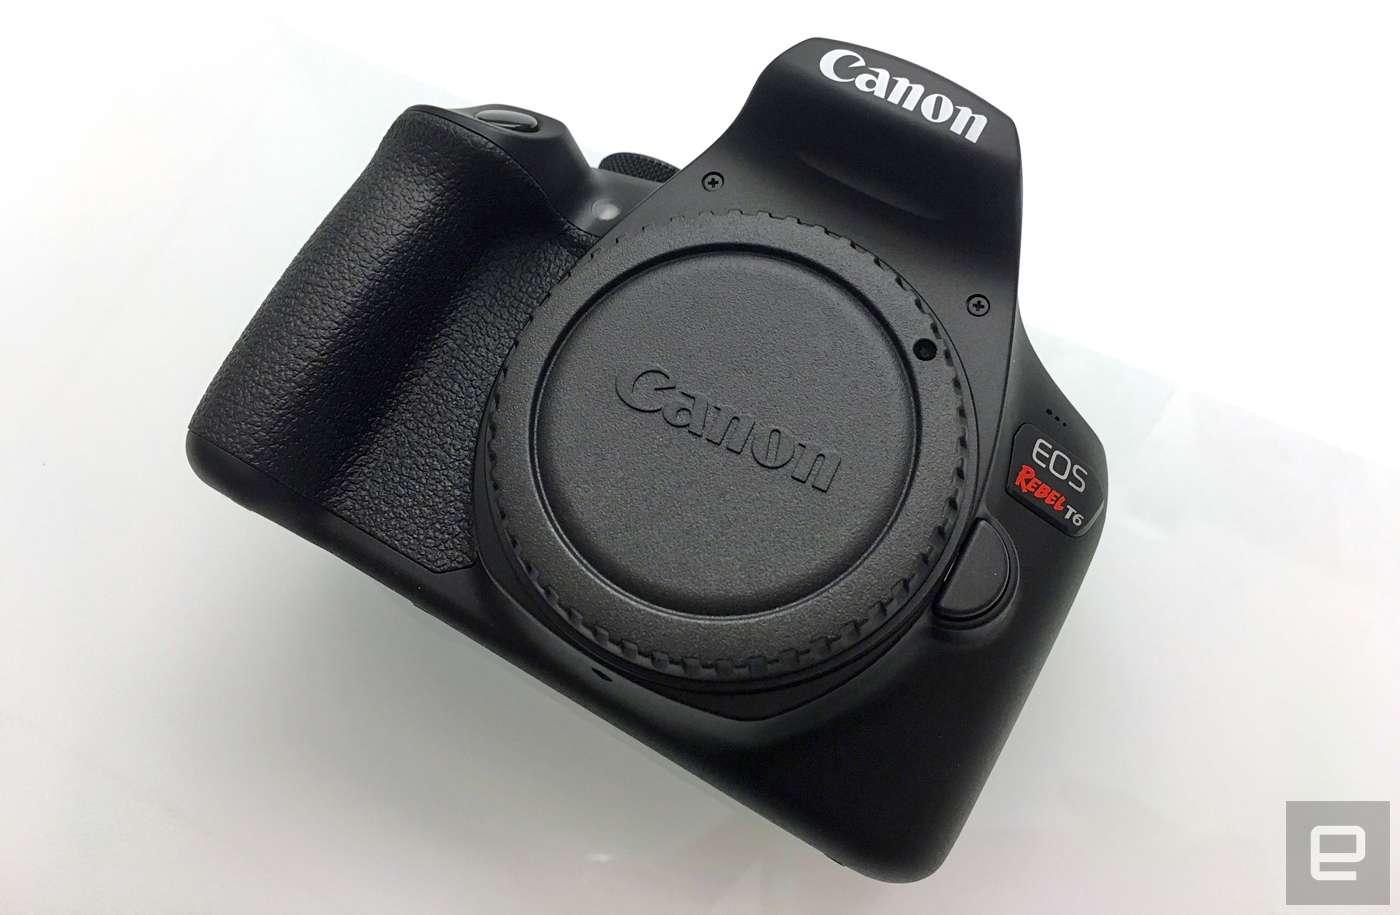 Reputable Eos Rebel Dslr Is Geared Toward Beginners Canon Eos Rebel T6 Vs T6i Vs T6s Canon Eos Rebel T6 Vs T6i Review dpreview Canon Eos Rebel T6 Vs T6i